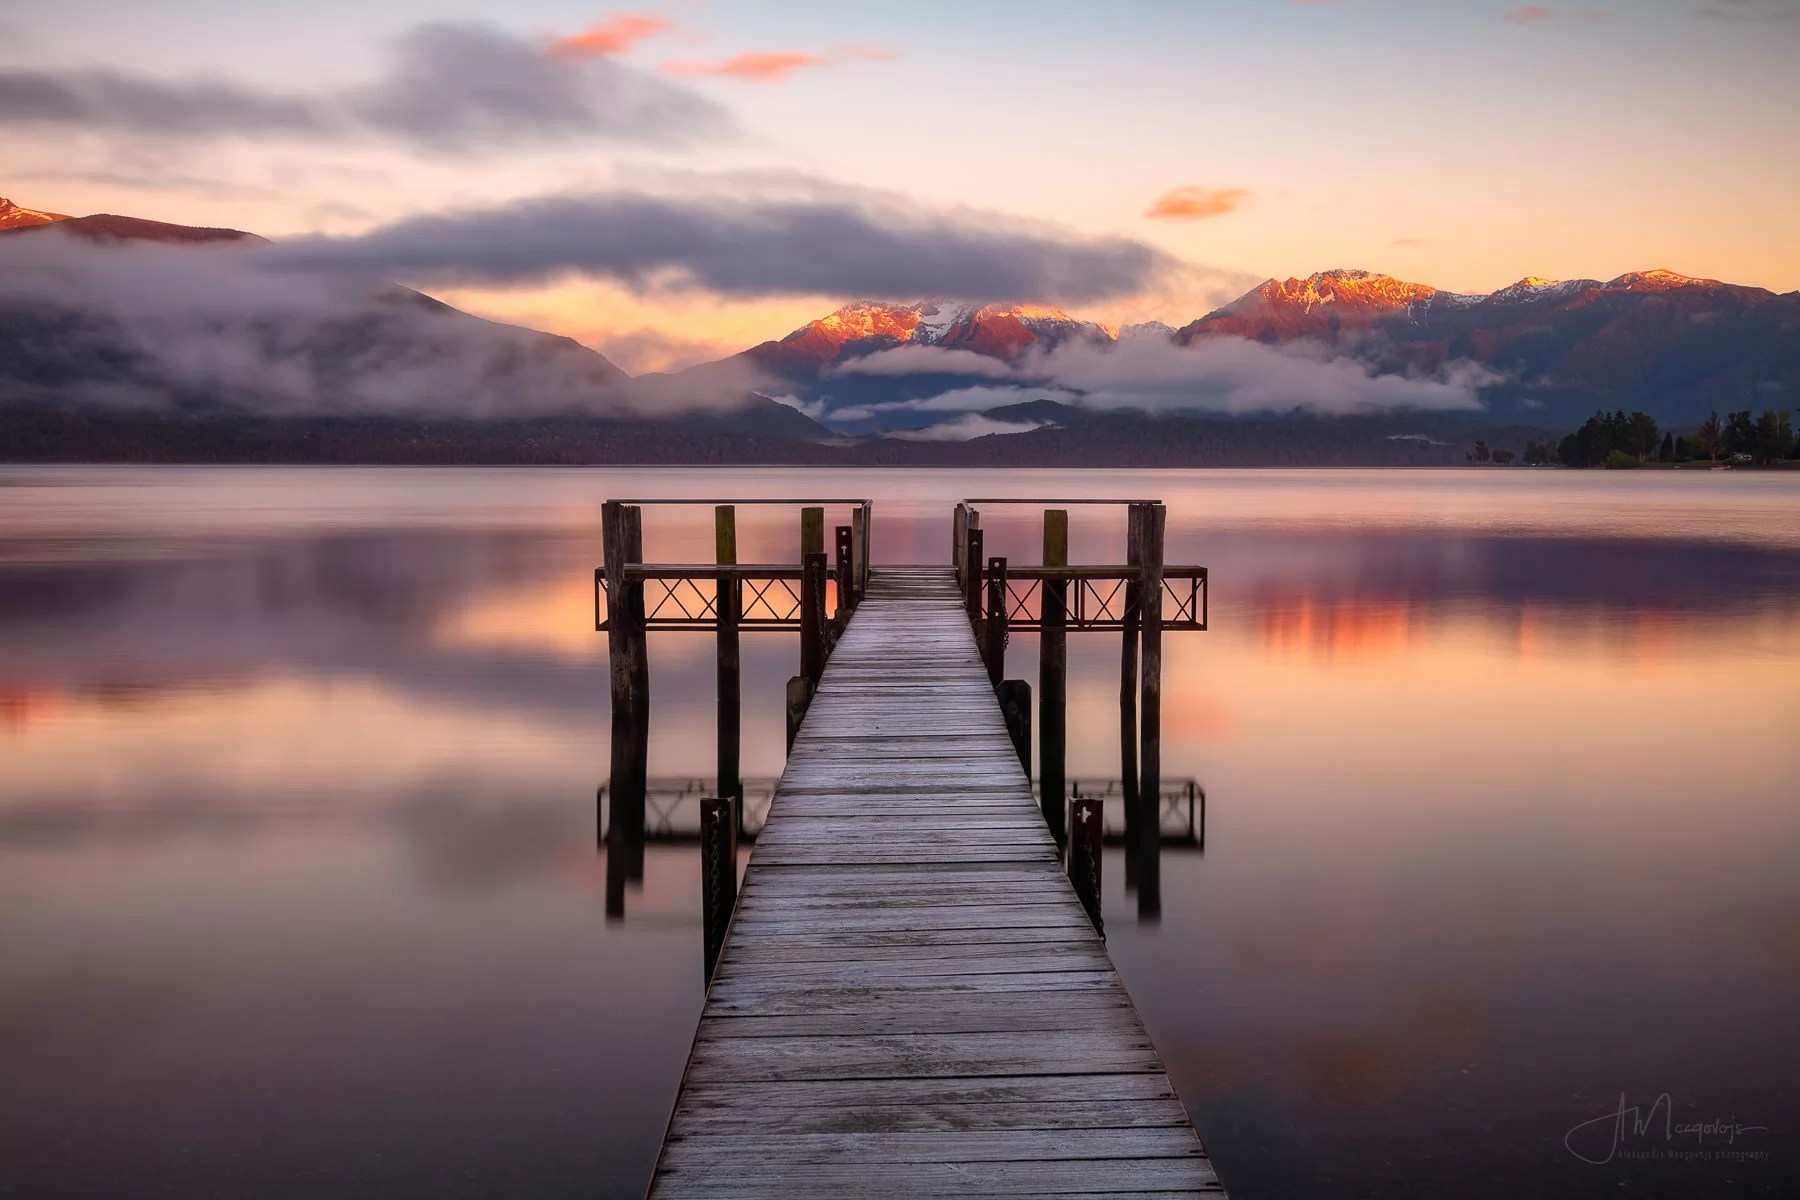 Sunrise at Te Anau lake, New Zealand